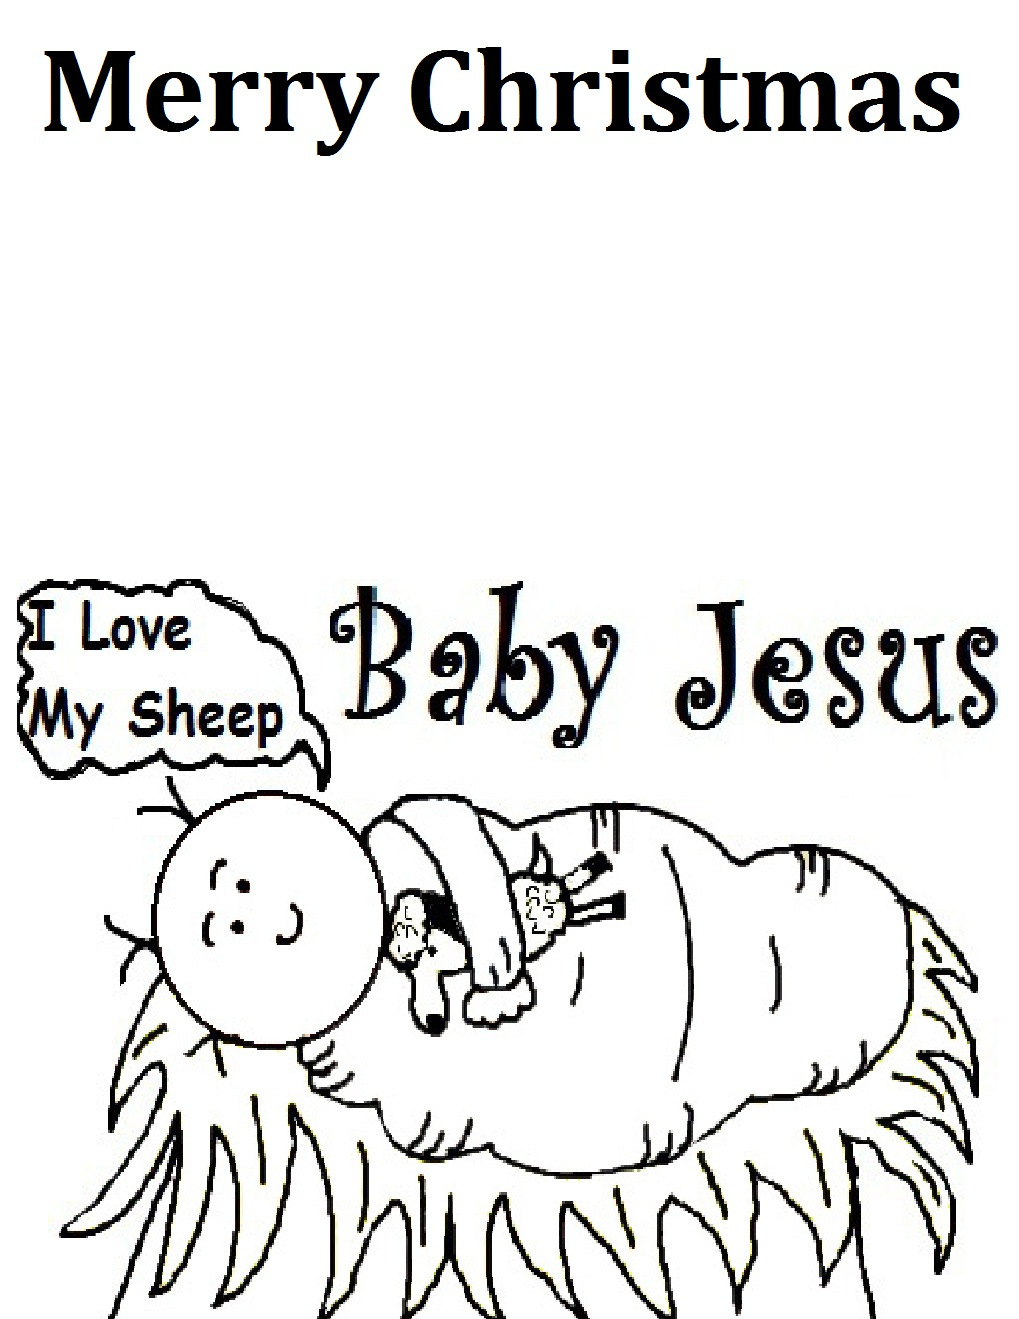 happy birthday jesus coloring sheet ; Baby%2520Jesus%2520Holding%2520Stuff%2520Animal%2520Coloring%2520Page